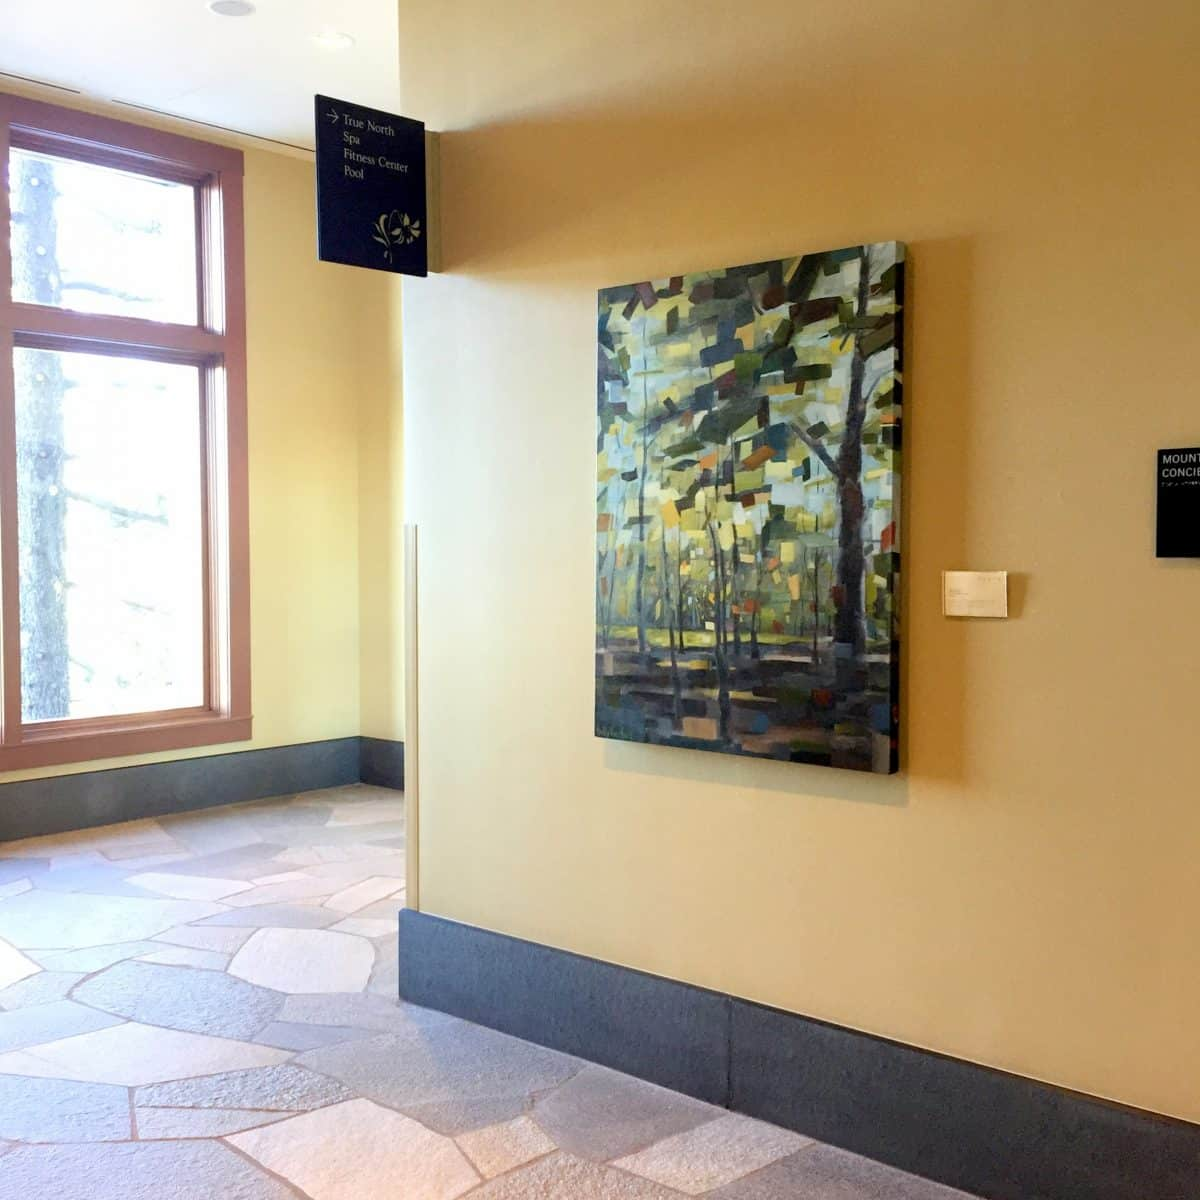 At The Ritz-Carlton, Exhibition Curated By Slate Consulting, Abstract Nature Painting By Holly Van Hart